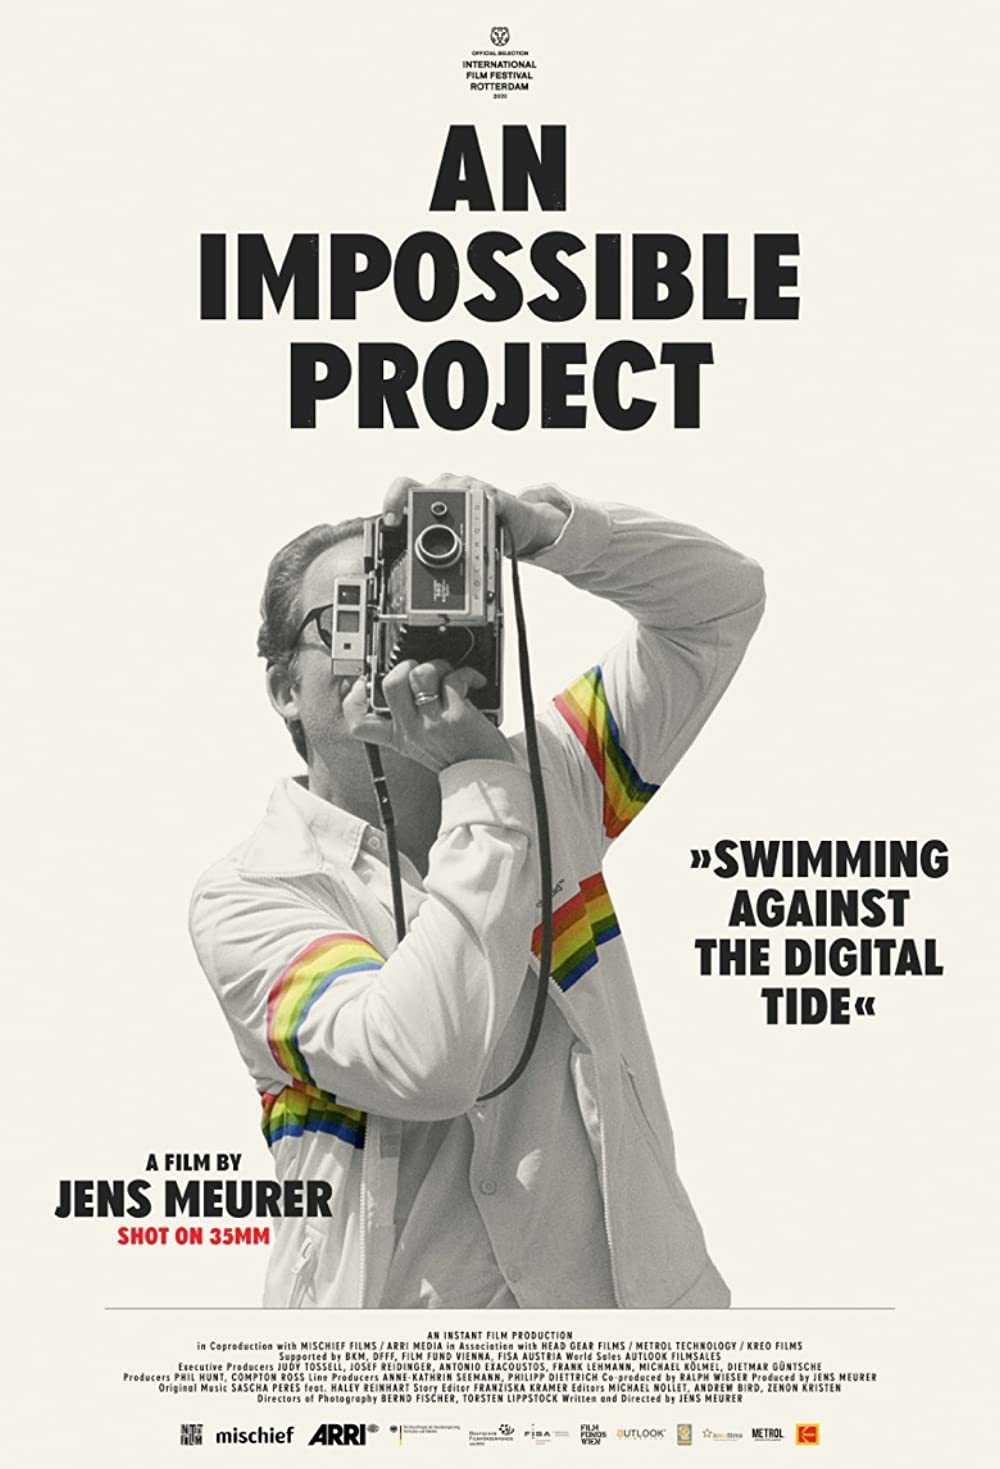 An Impossible Project film poster